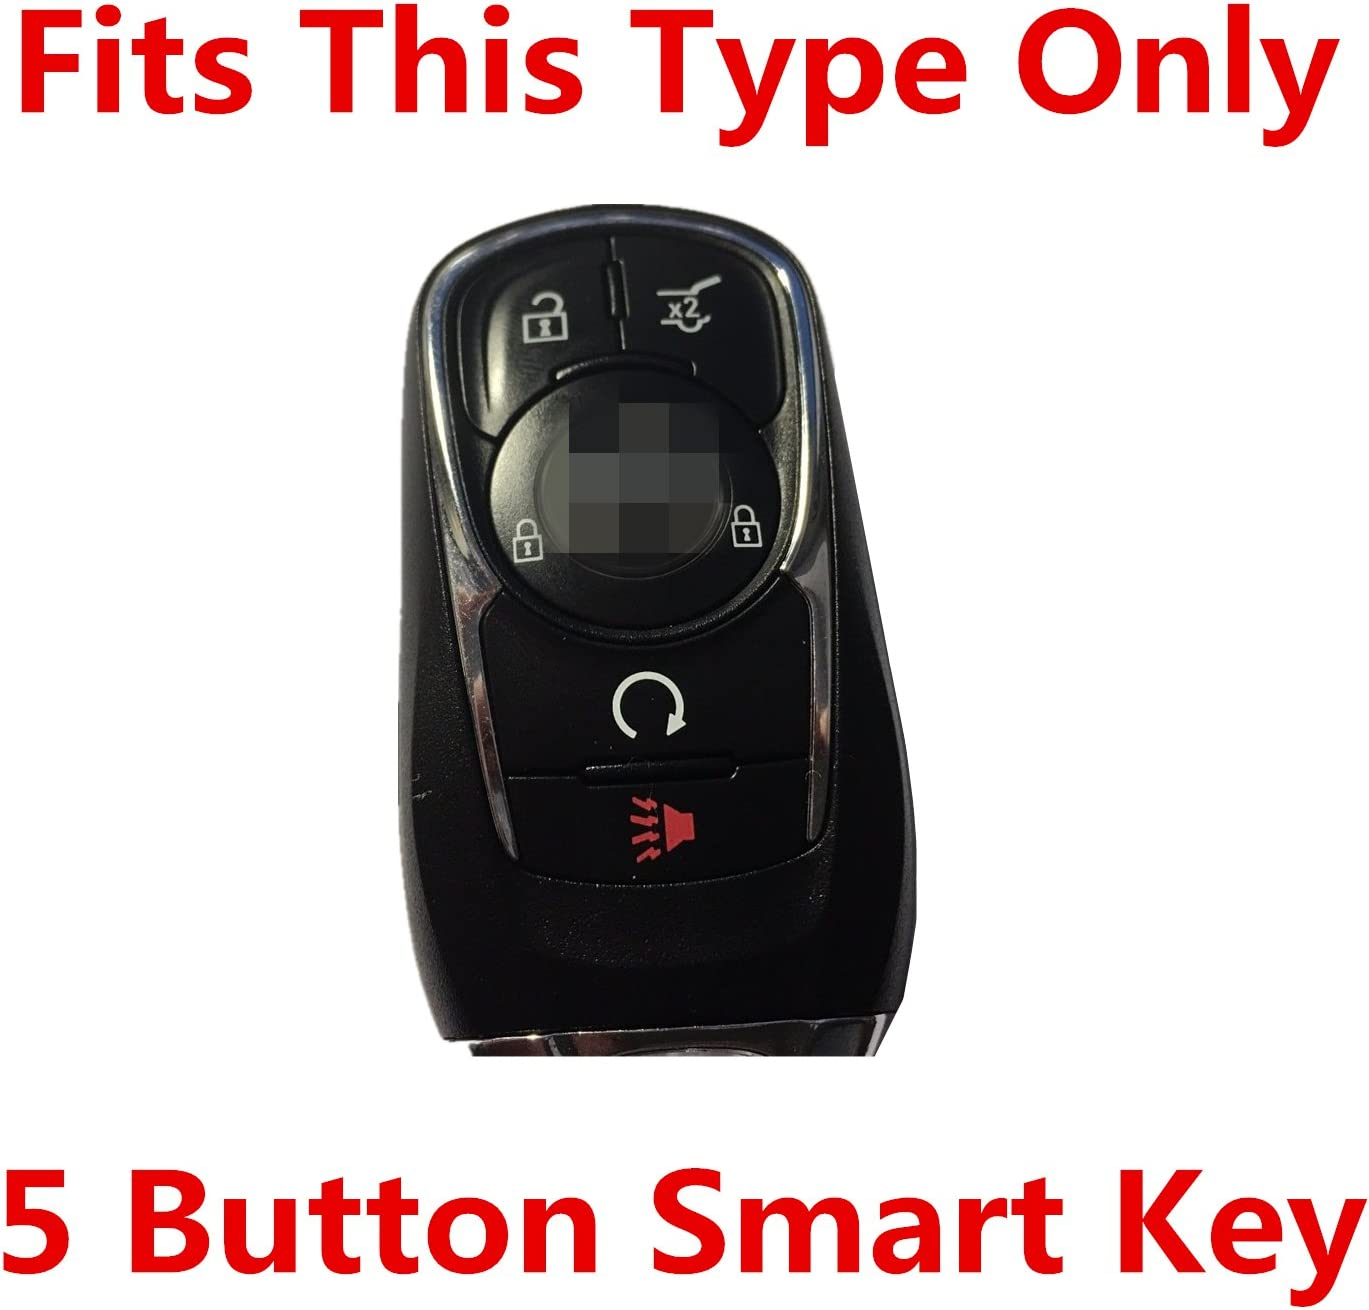 Rpkey Silicone Keyless Entry Remote Control Key Fob Cover Case protector For 5 button 2016 2017 Buick Cascada Envision Essence LaCrosse 13508414 HYQ4AA HYQ4EA